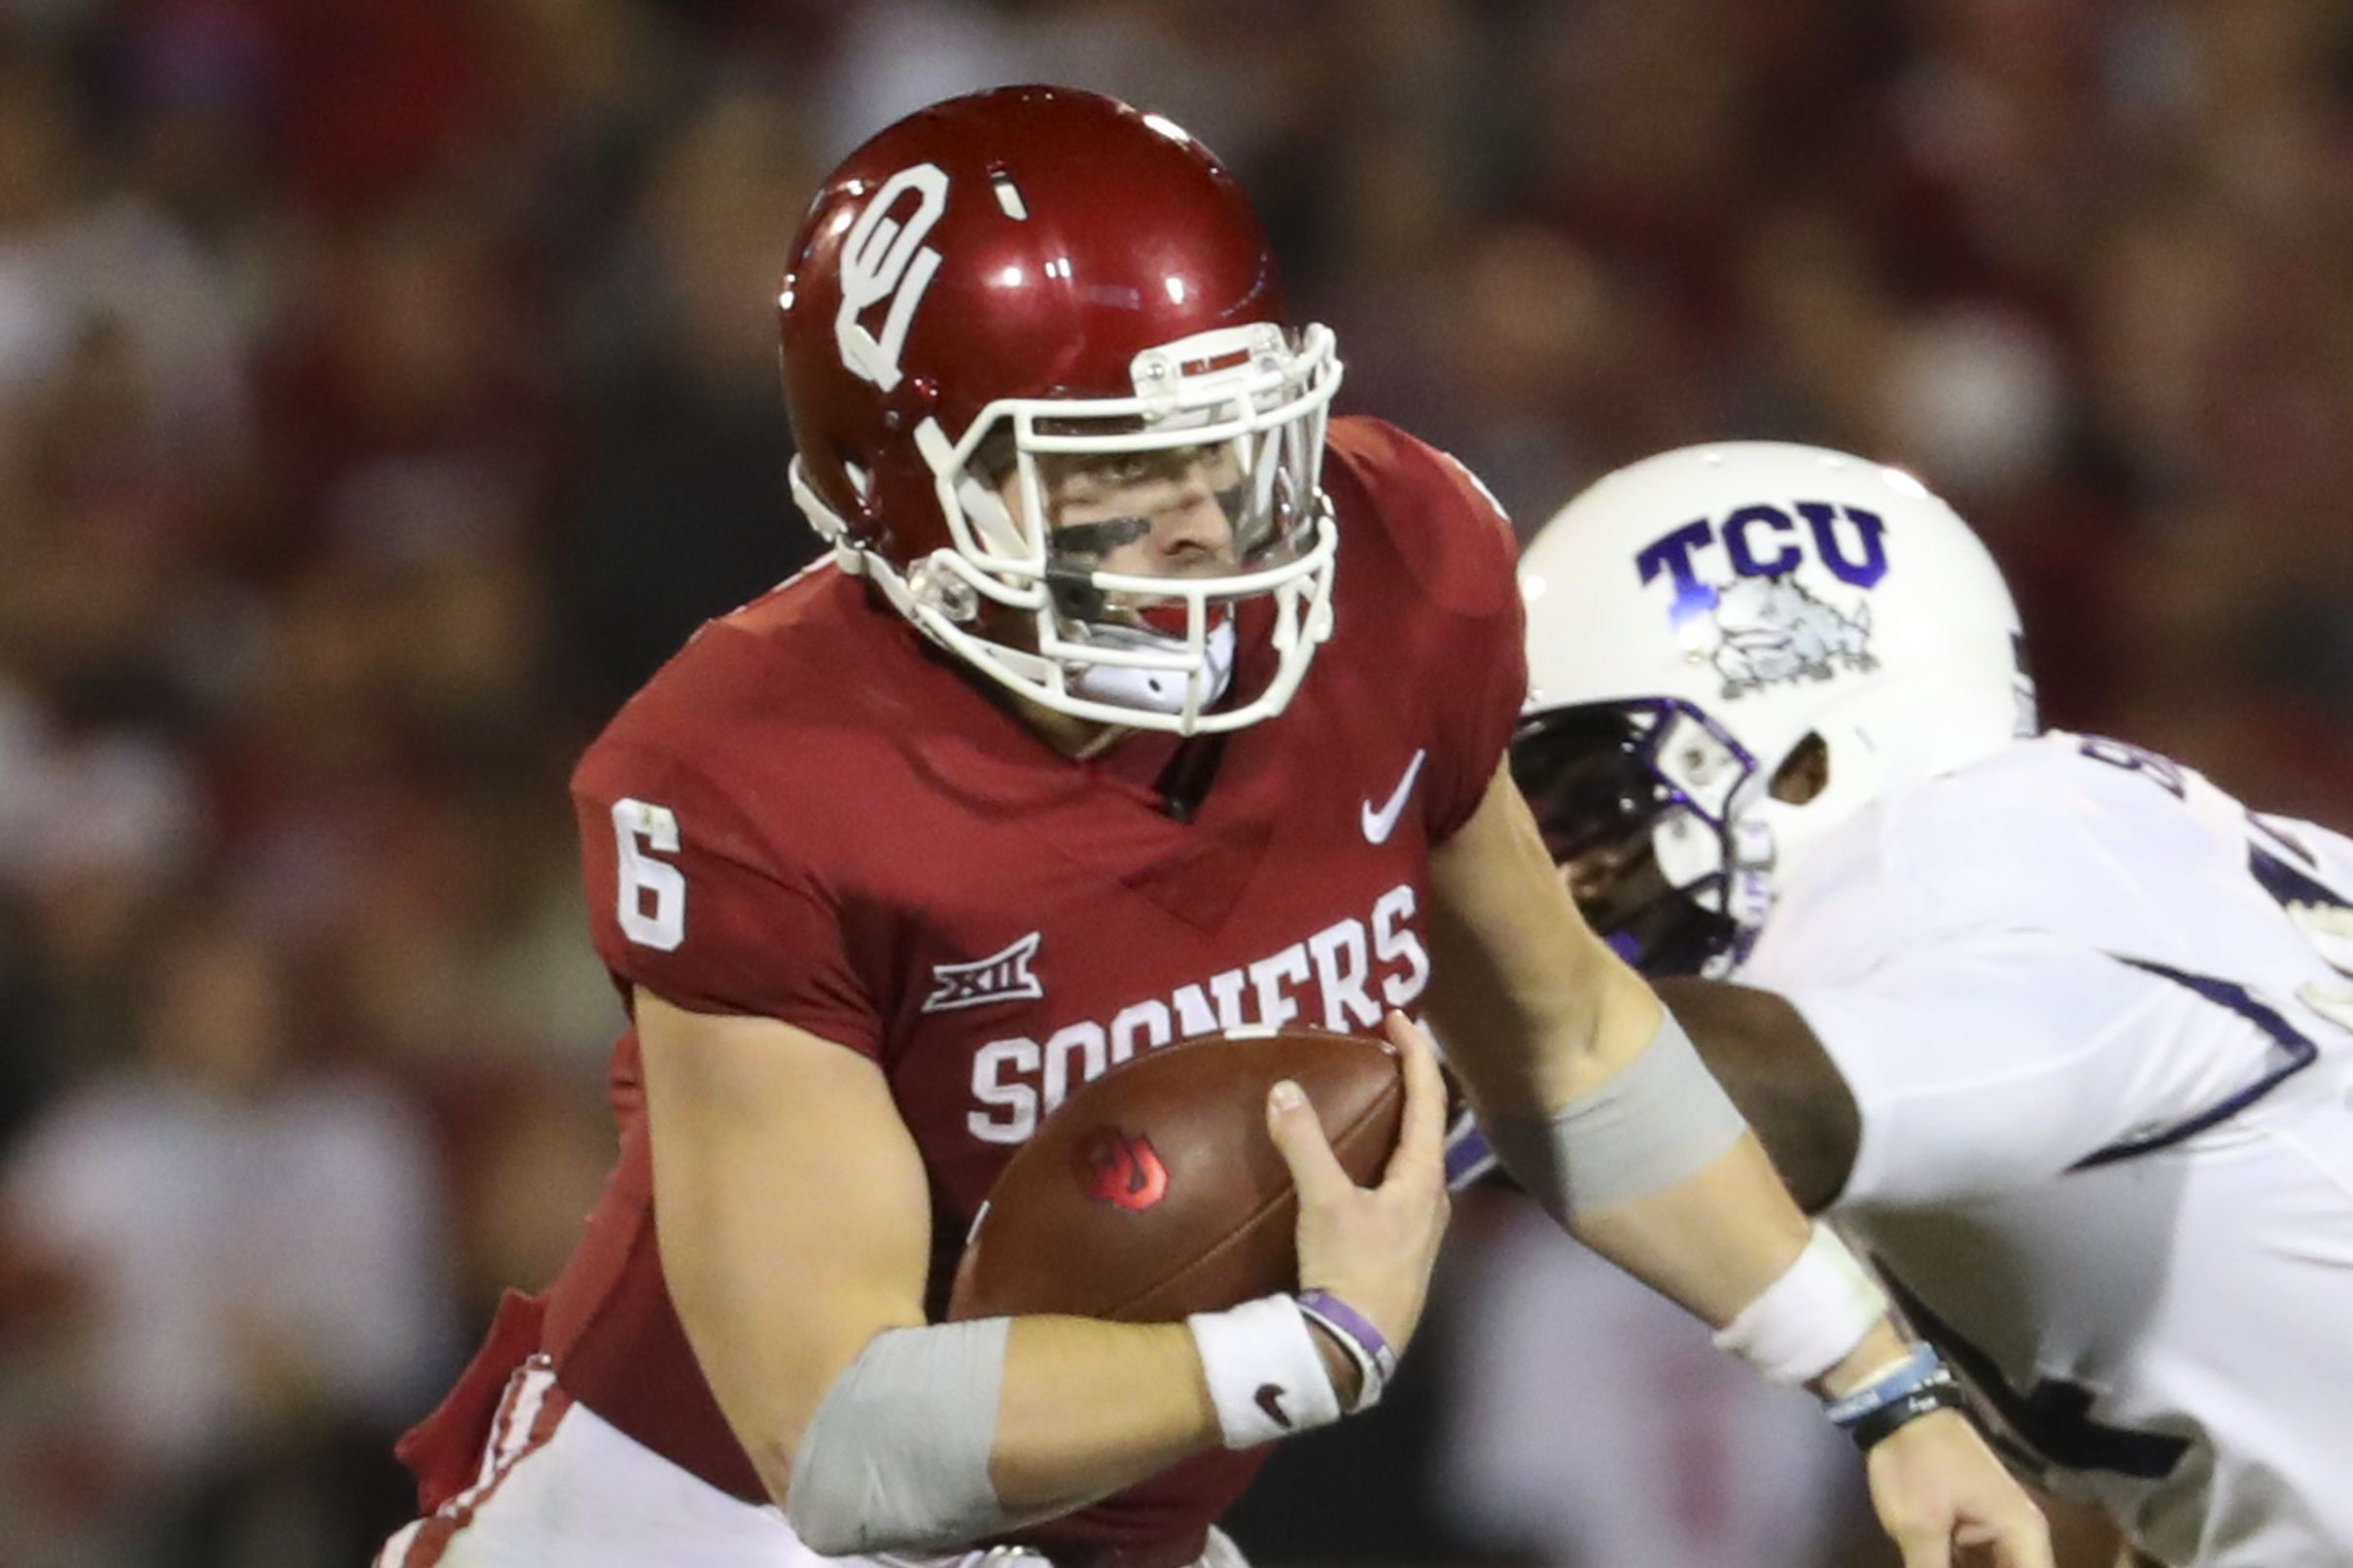 OU would've just clinched a CFP spot, if not for Big 12 CG